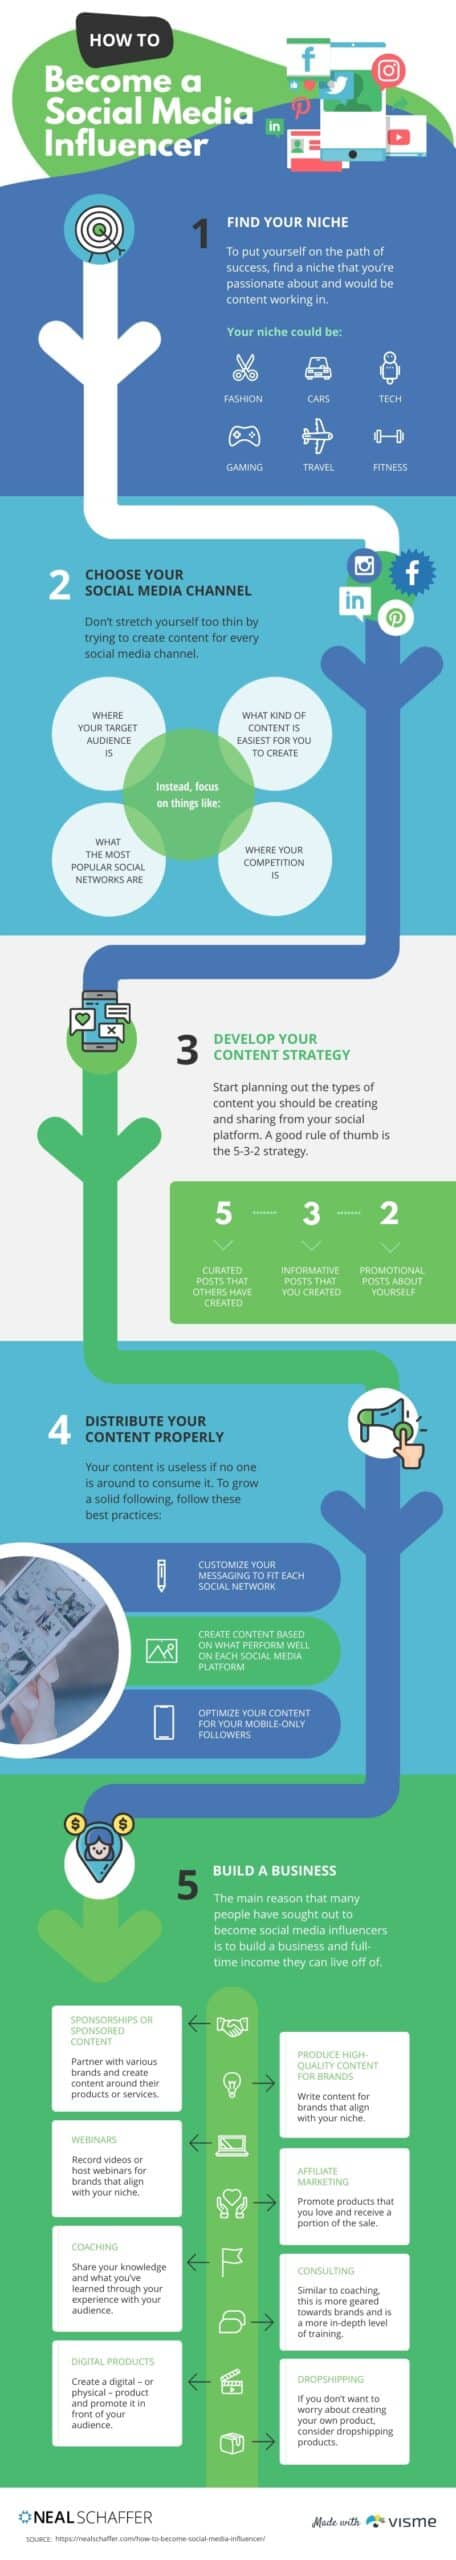 how to become a social media influencer infographic by neal schaffer